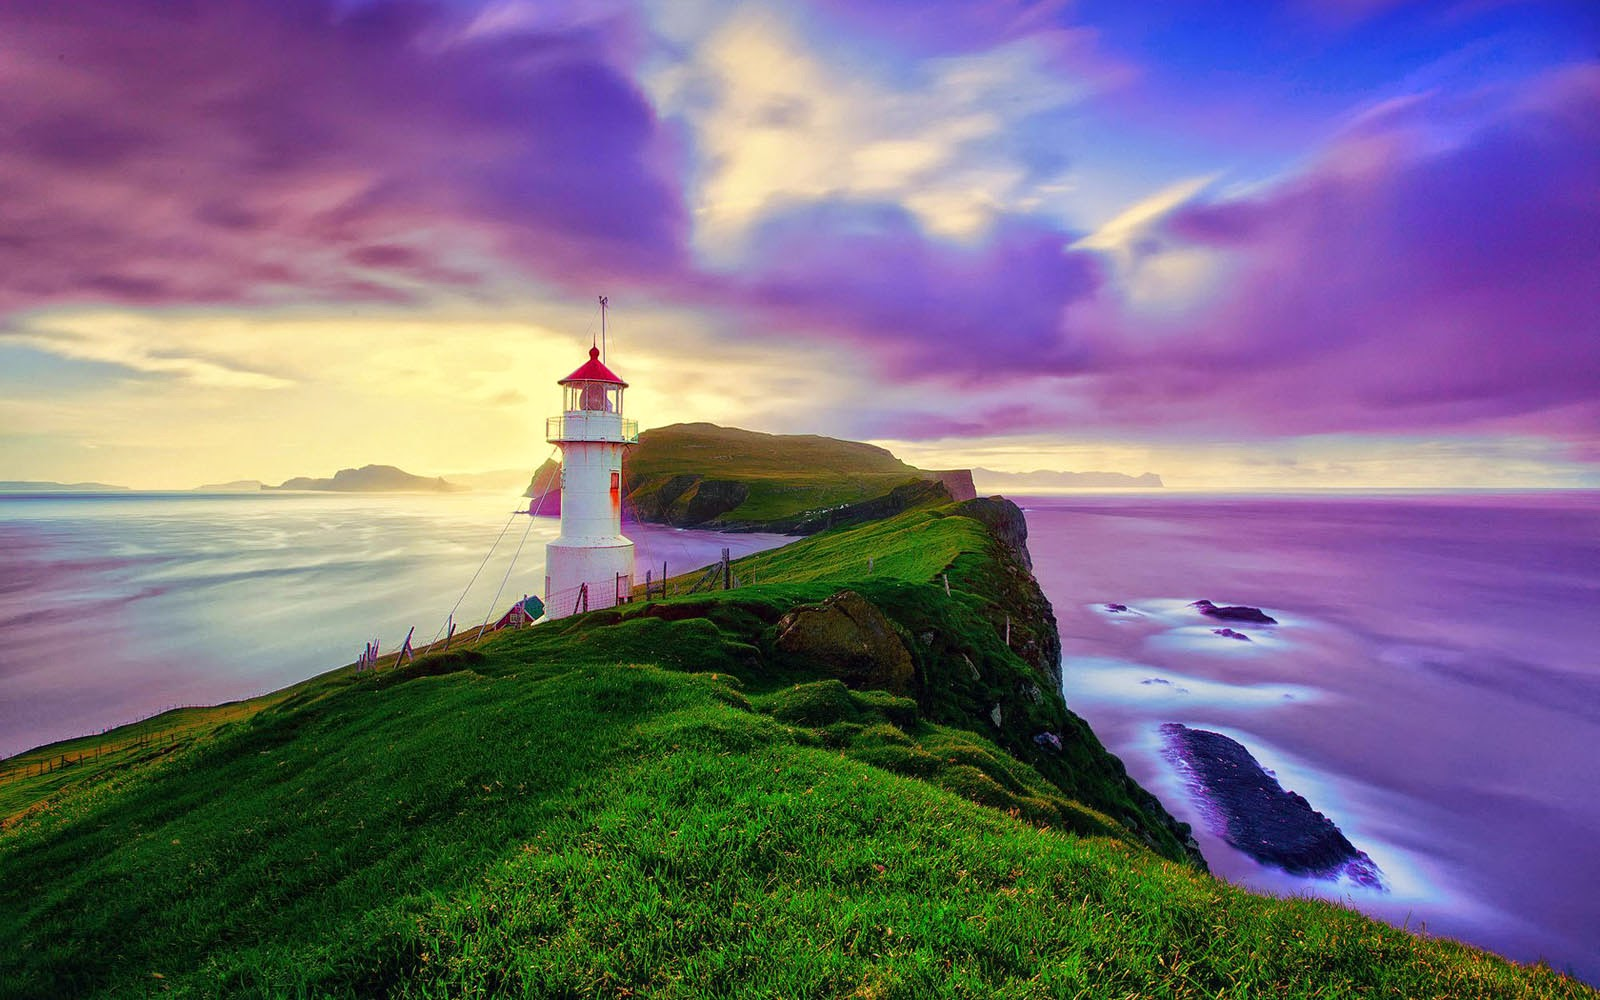 Lighthouse Hd Wallpapers: Wallpapers: Lighthouse Wallpapers